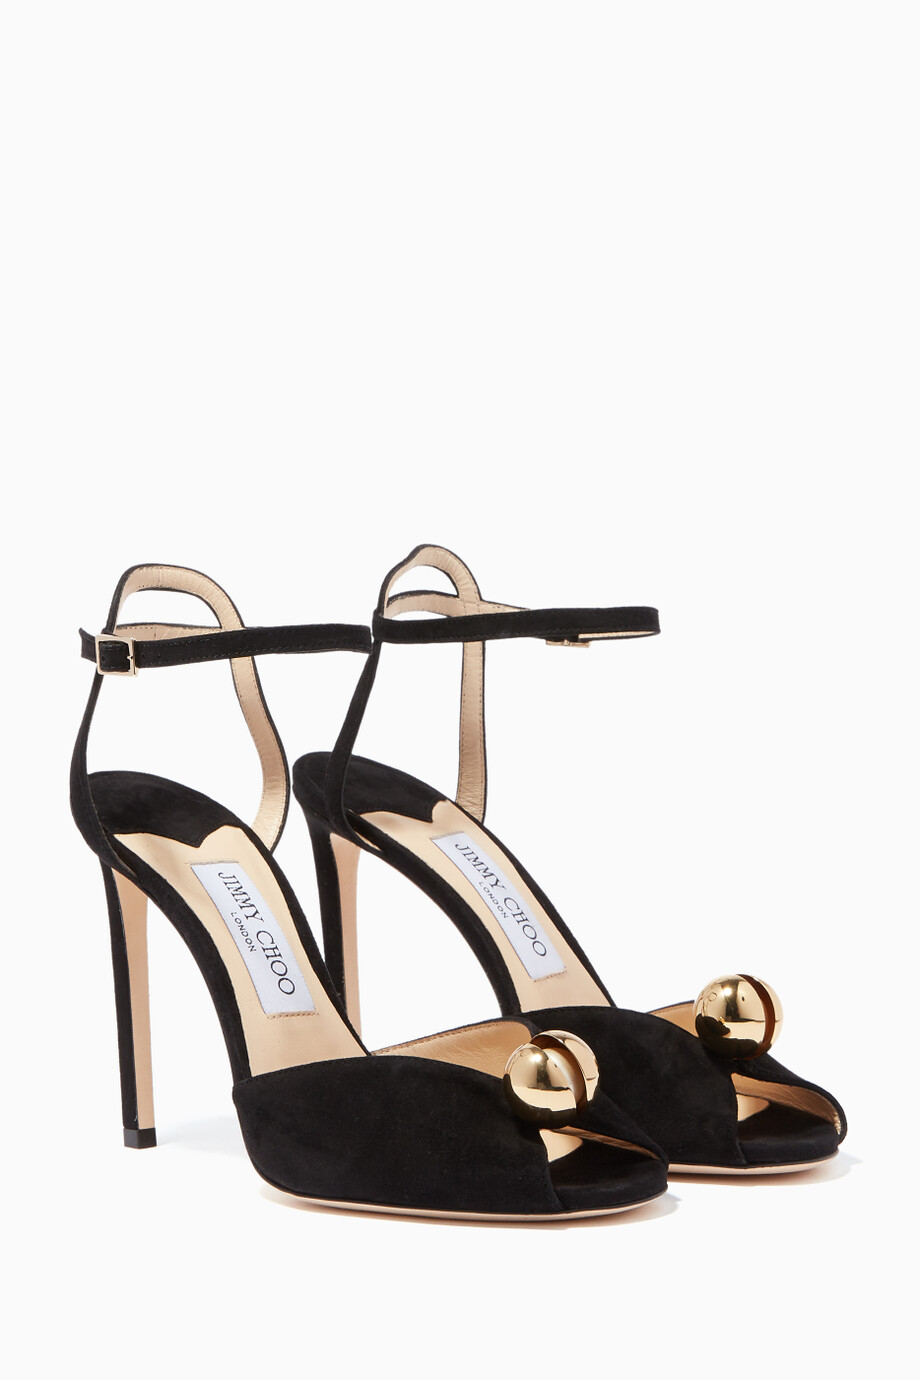 a517a58f844 Shop Jimmy Choo Black Black Sacora Suede Sandals for Women